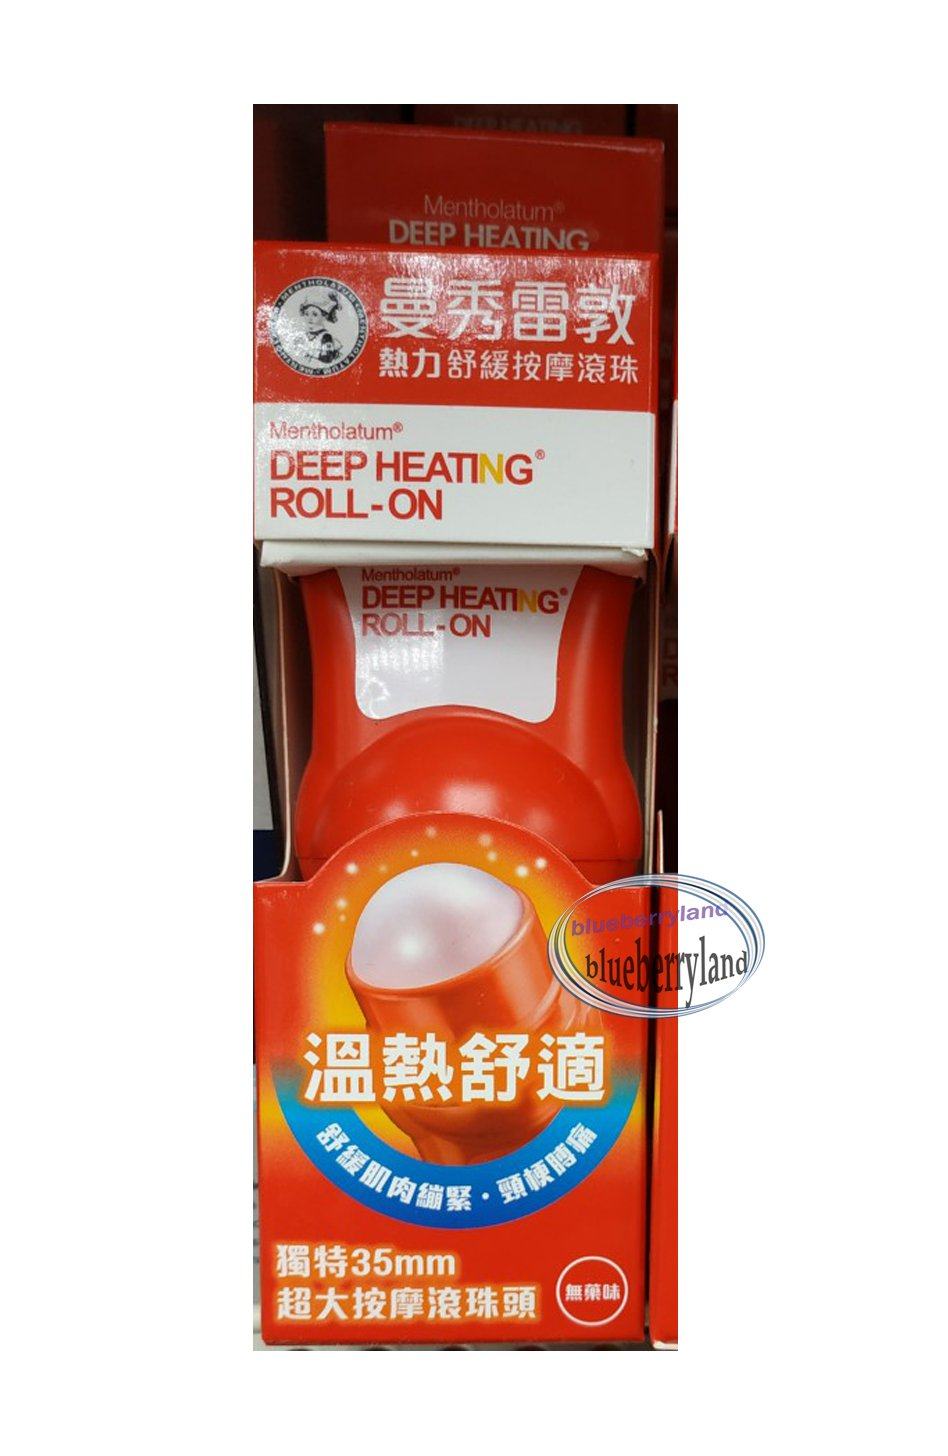 Mentholatum Deep Heating Roll-on 50ml �������緩��滾�